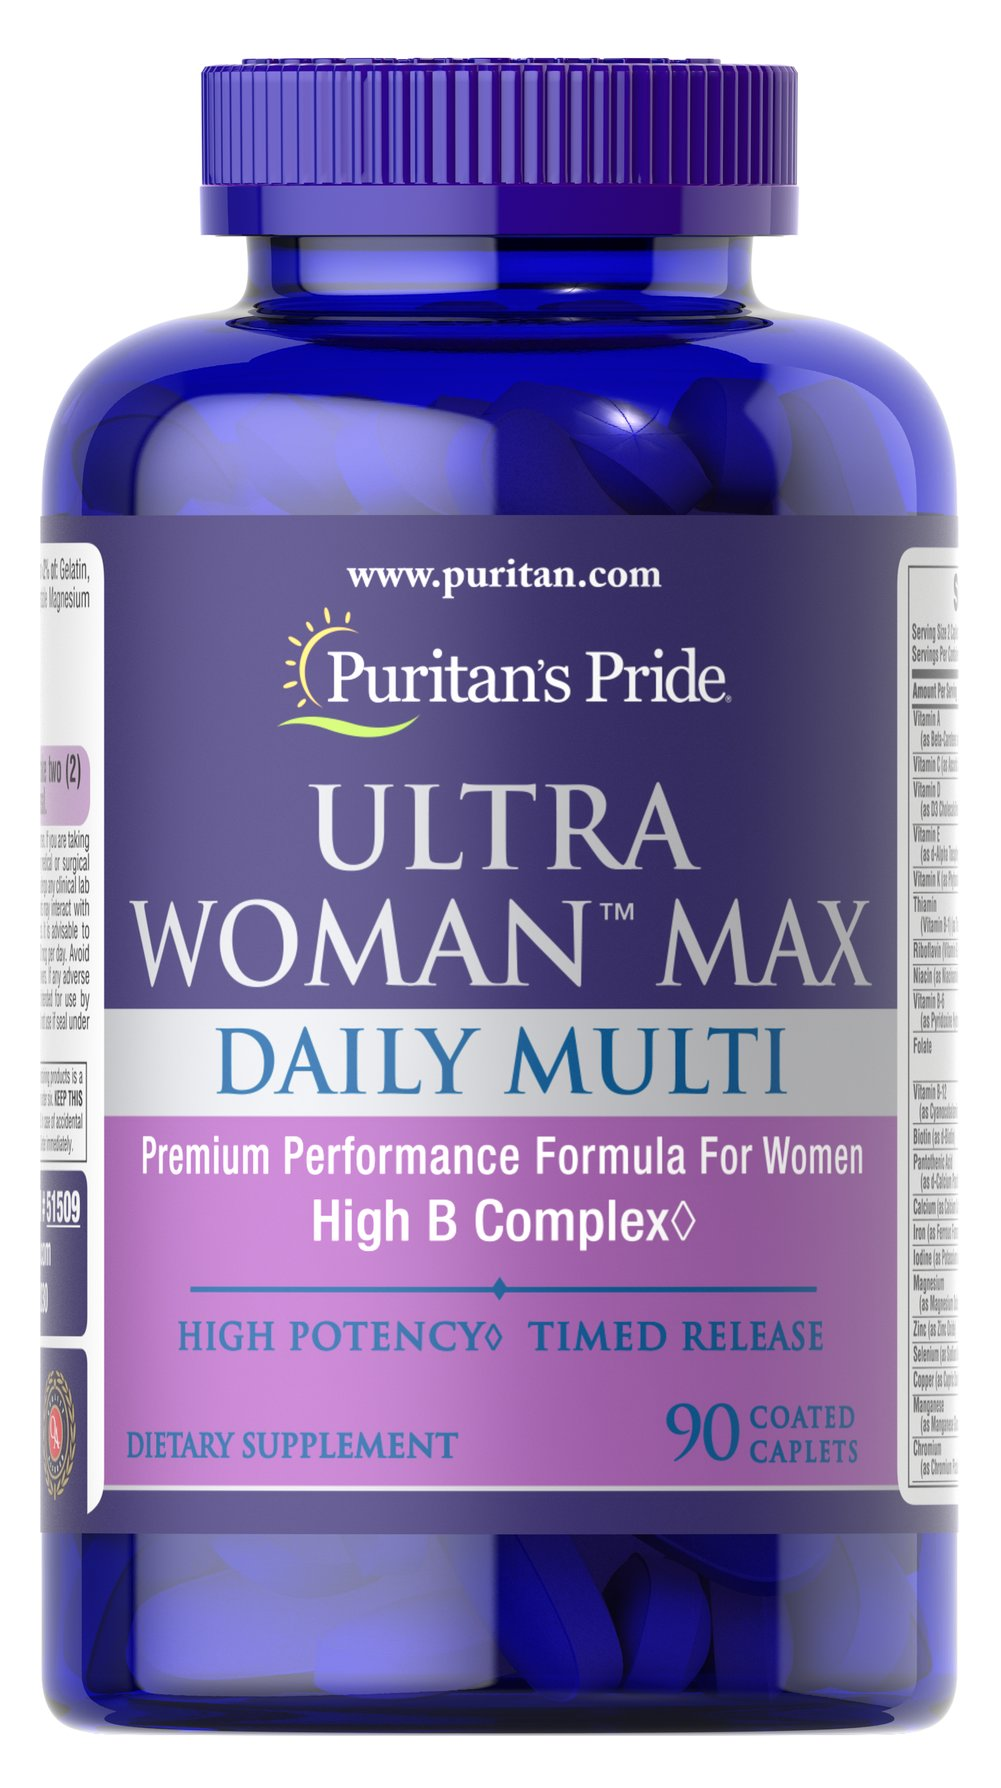 Ultra Woman Max This high potency daily multi was designed with a woman's specific health needs in mind. The High B-Complex helps support overall well-being.** B Vitamins work together to support nervous system health.** B Vitamins also promote energy metabolism and provide nourishment for the stress of daily living.** <br /><br />The antioxidant blend (including antioxidants like Vitamin C and Vitamin E) helps neutralize harmful free radicals.** Free radicals can damage cell mem